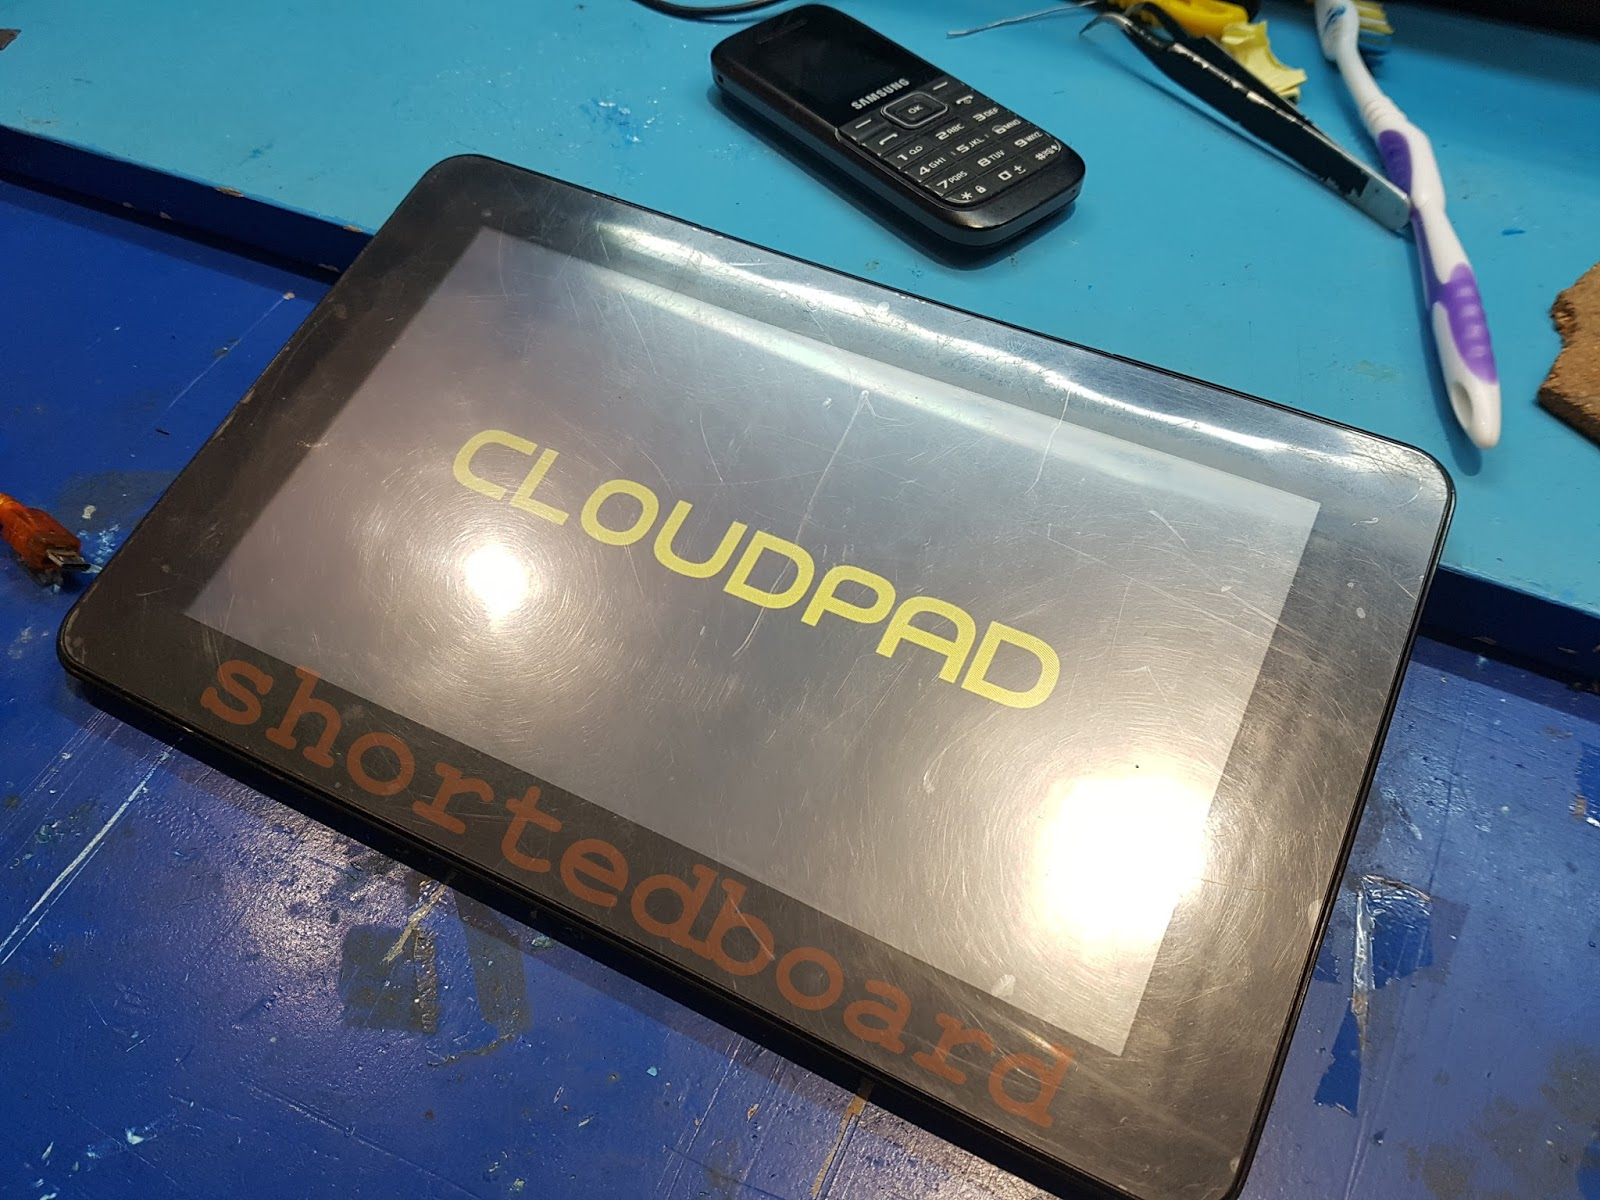 CloudPad 900TV Tested Firmware